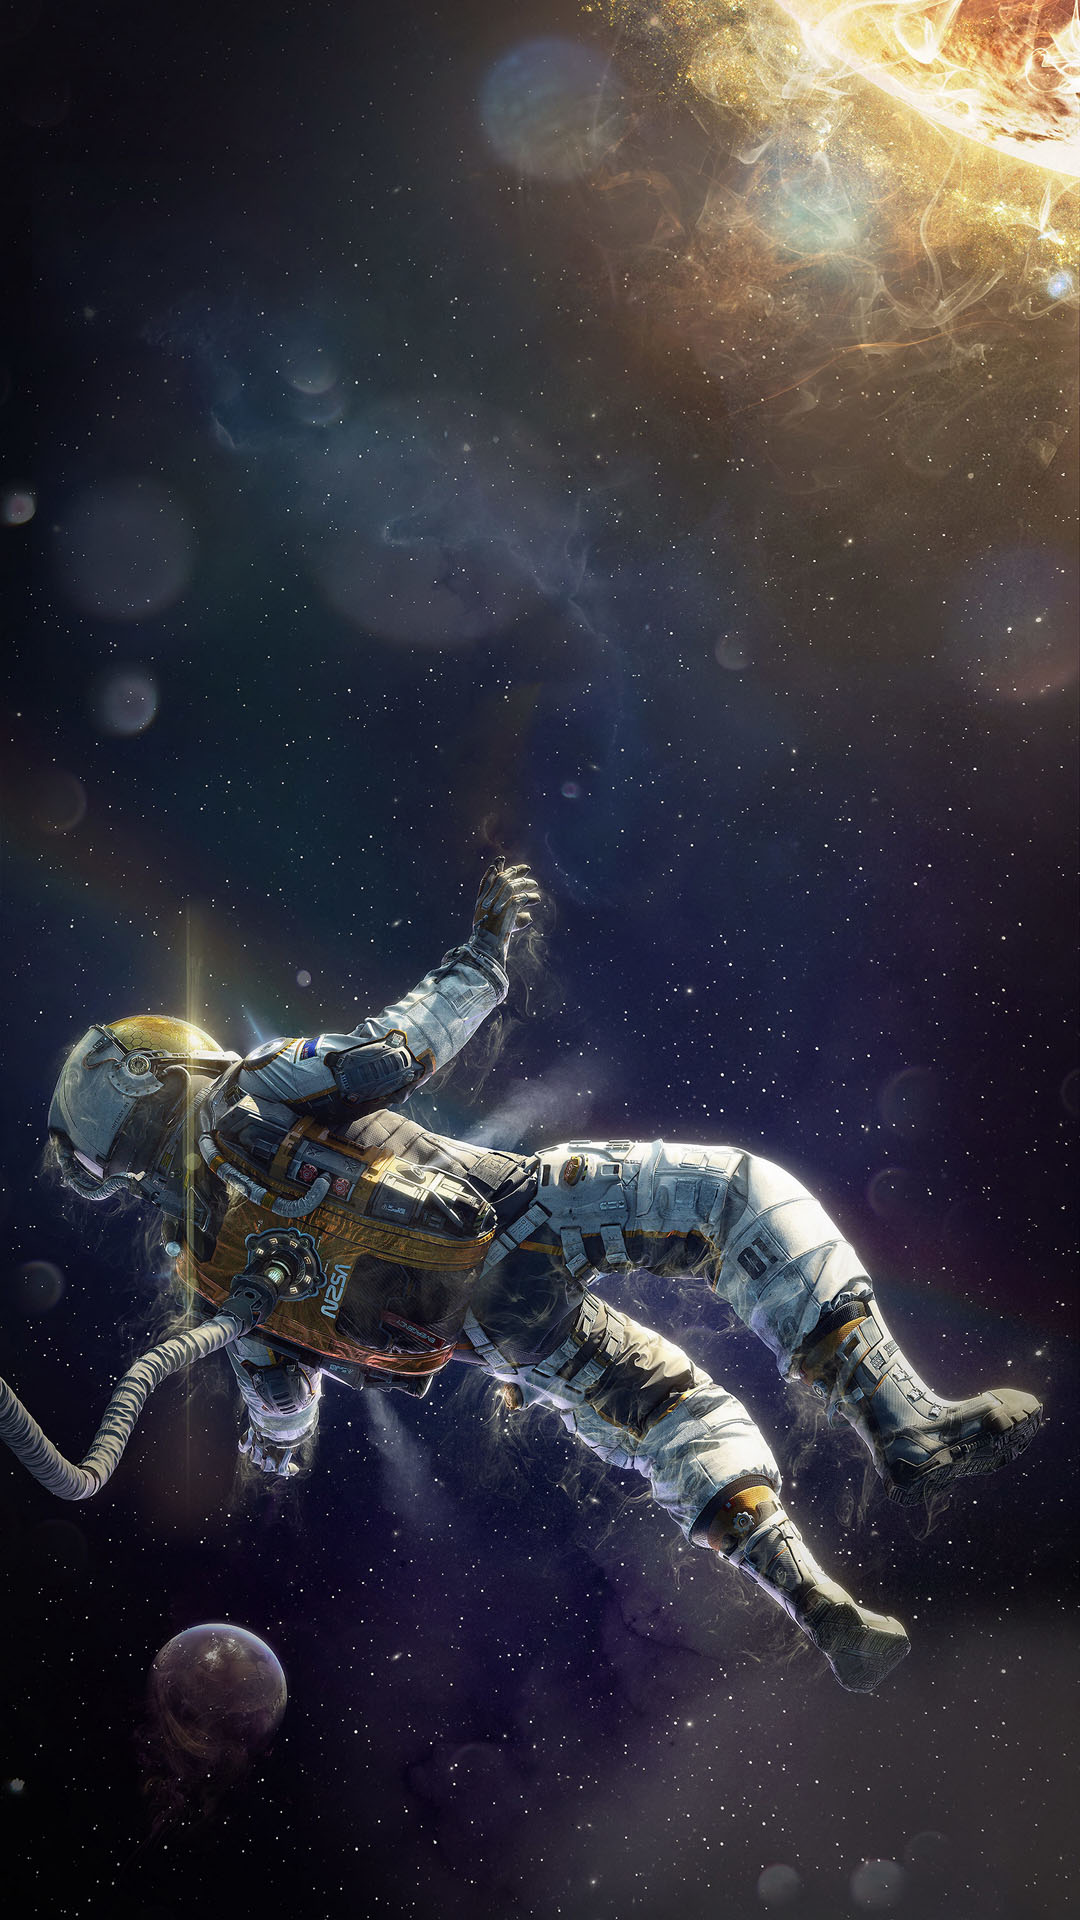 iPhone wallpaper astronaut1 Astronaut